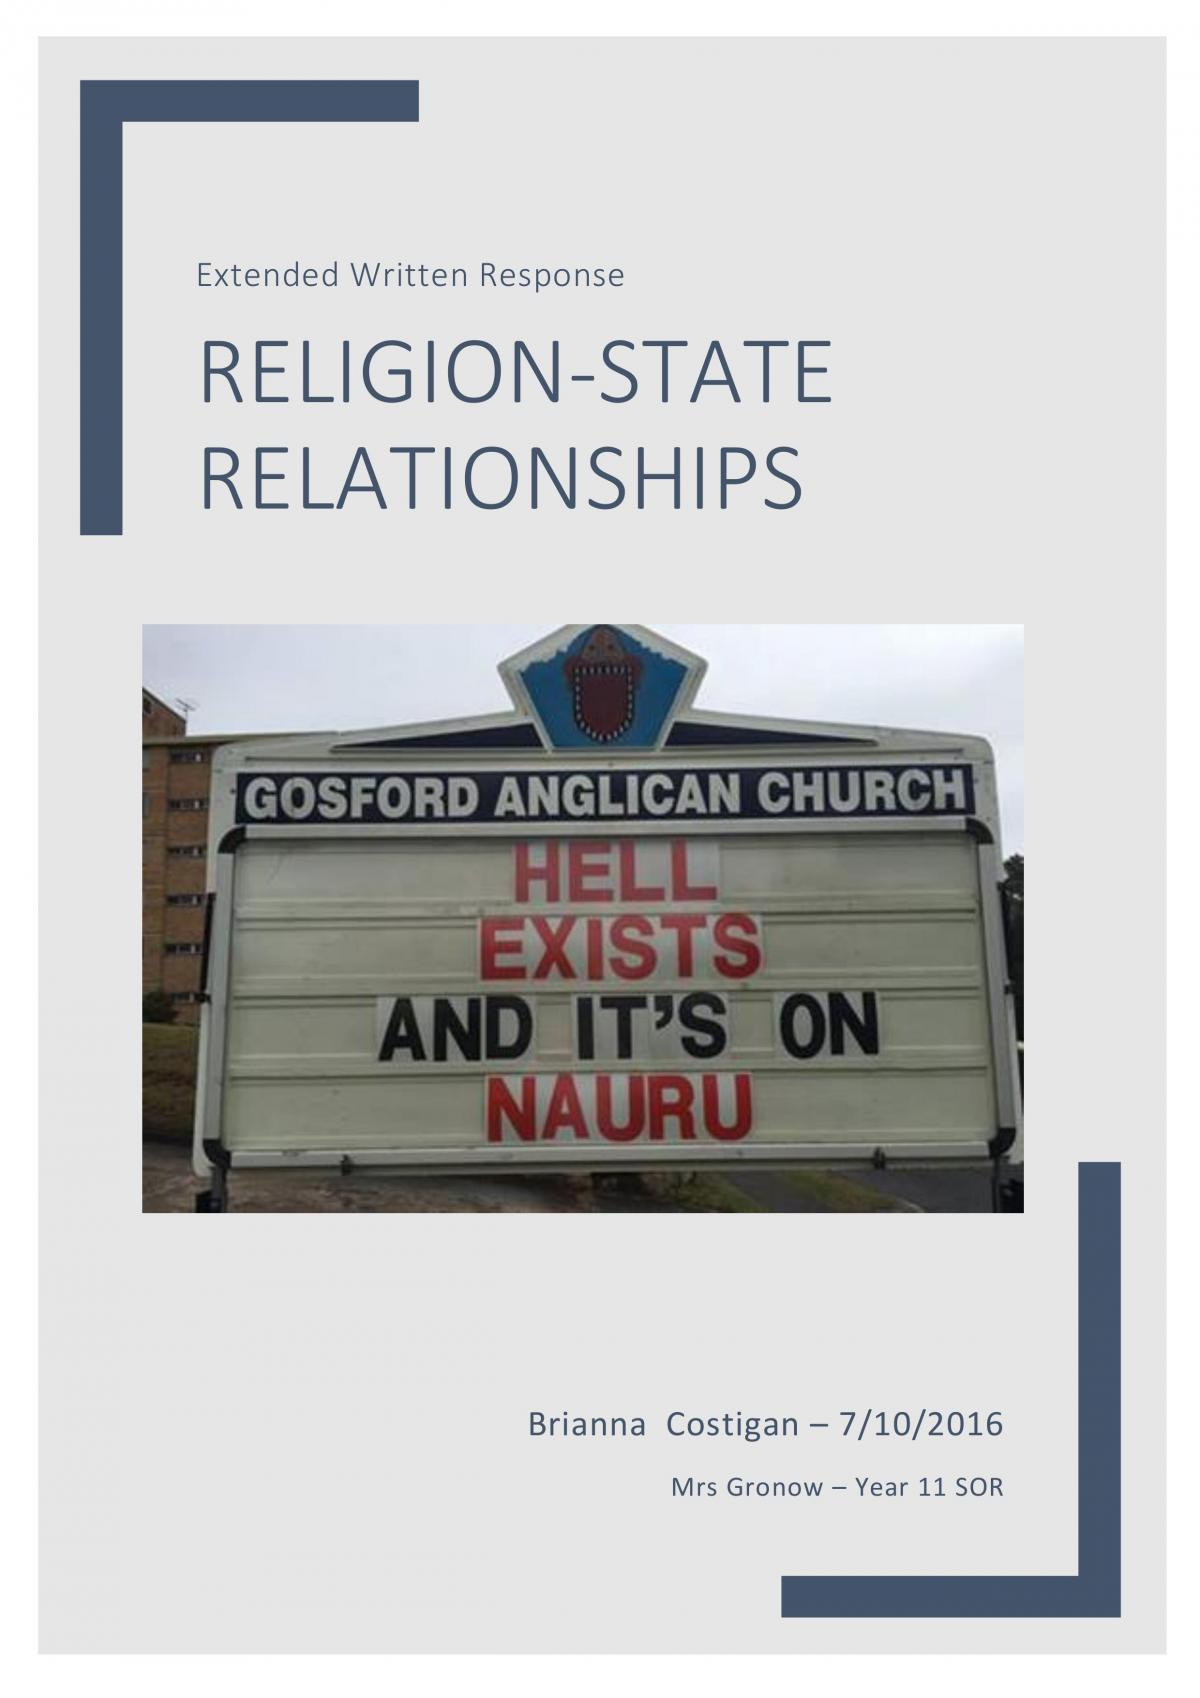 Religion-State Relationships in Australia - Essay - Page 1